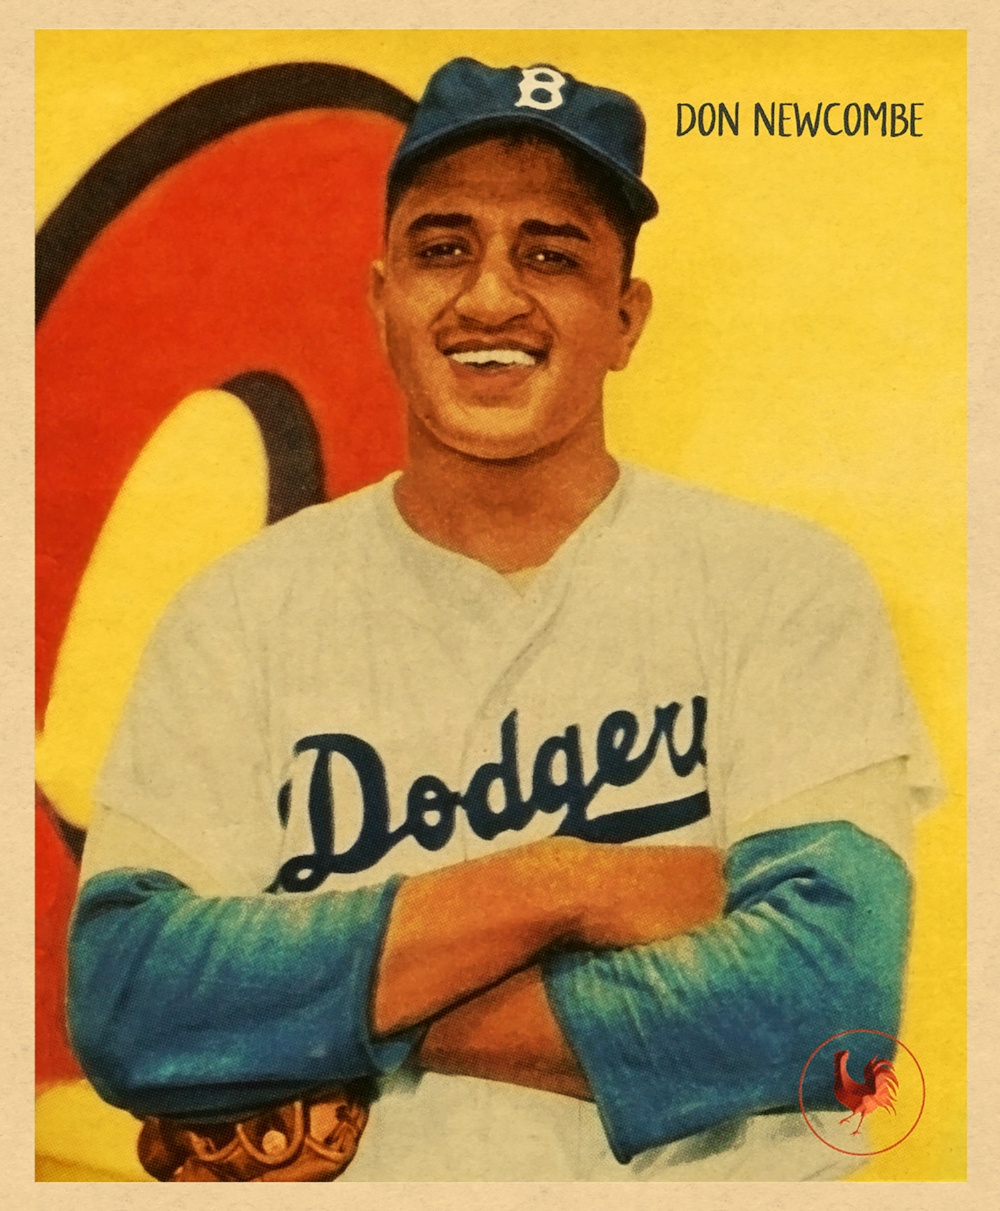 1950 R319 SERIES - DON NEWCOMBE (RC)  4/3/17 Auction Closes at 111.50 USD - Current Population of 1